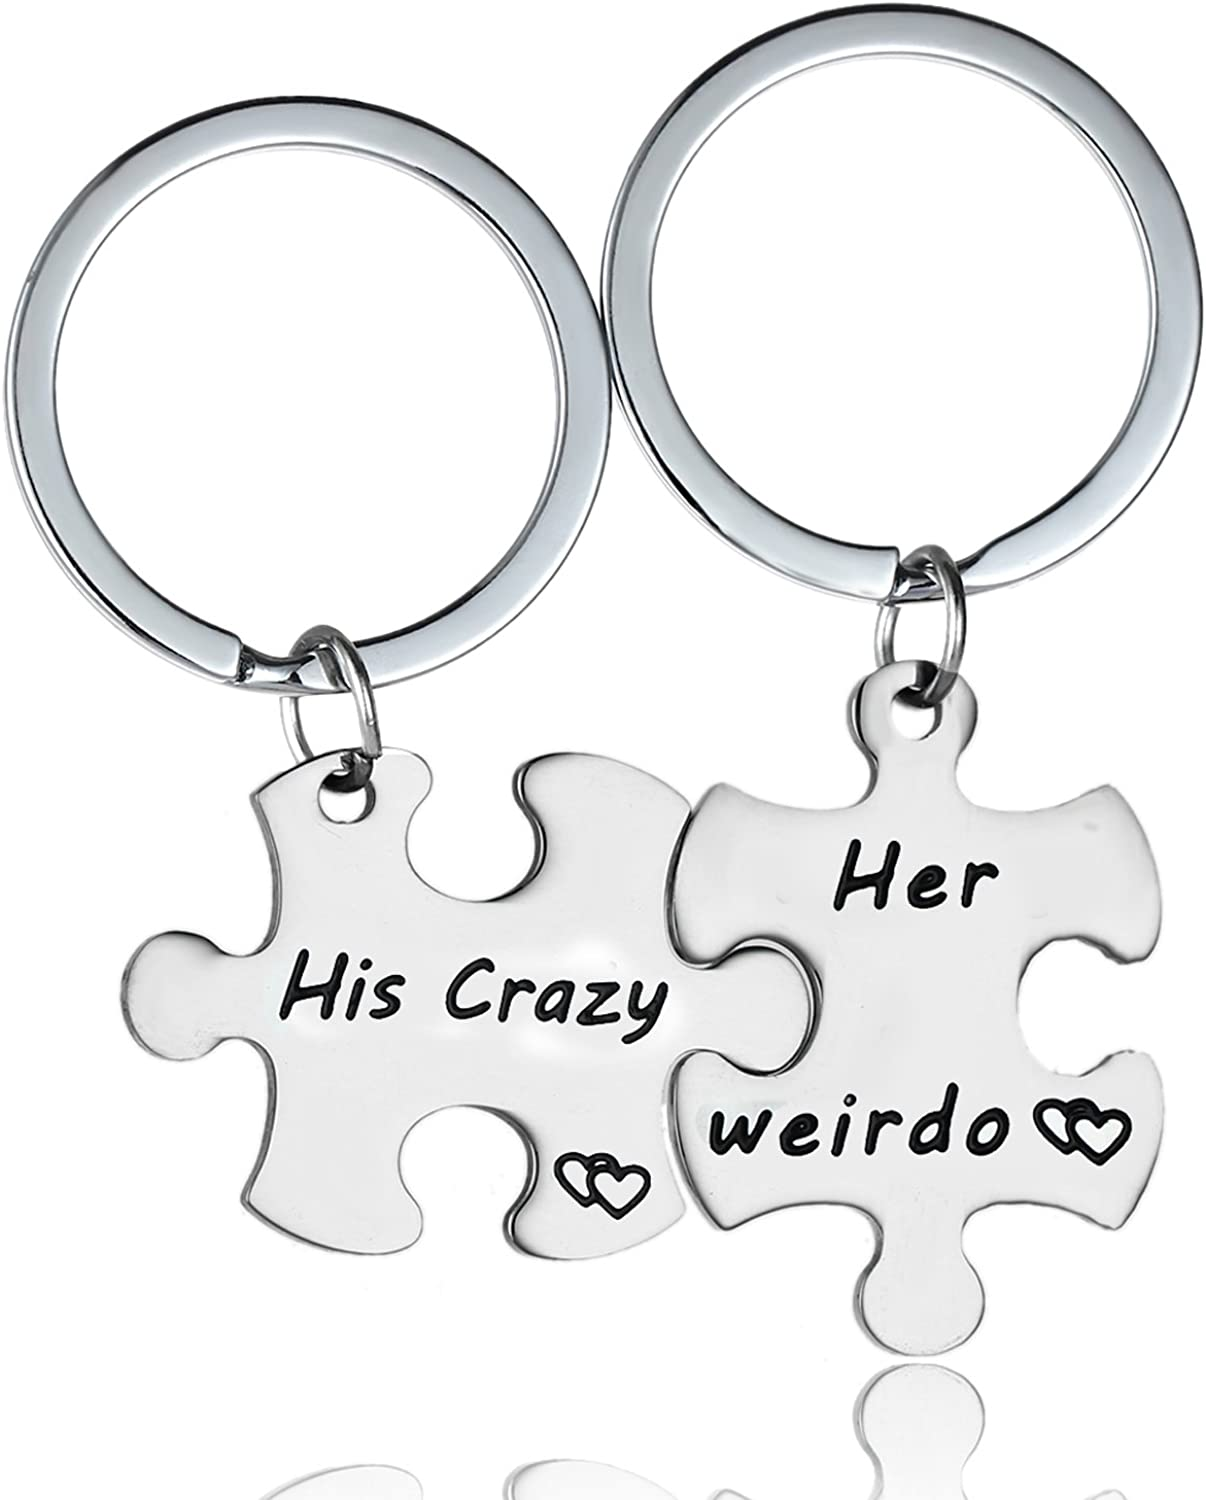 Couple Key Ring Silver Heart Keychain Heart-shape Shaped His Crazy Her Weirdo NB